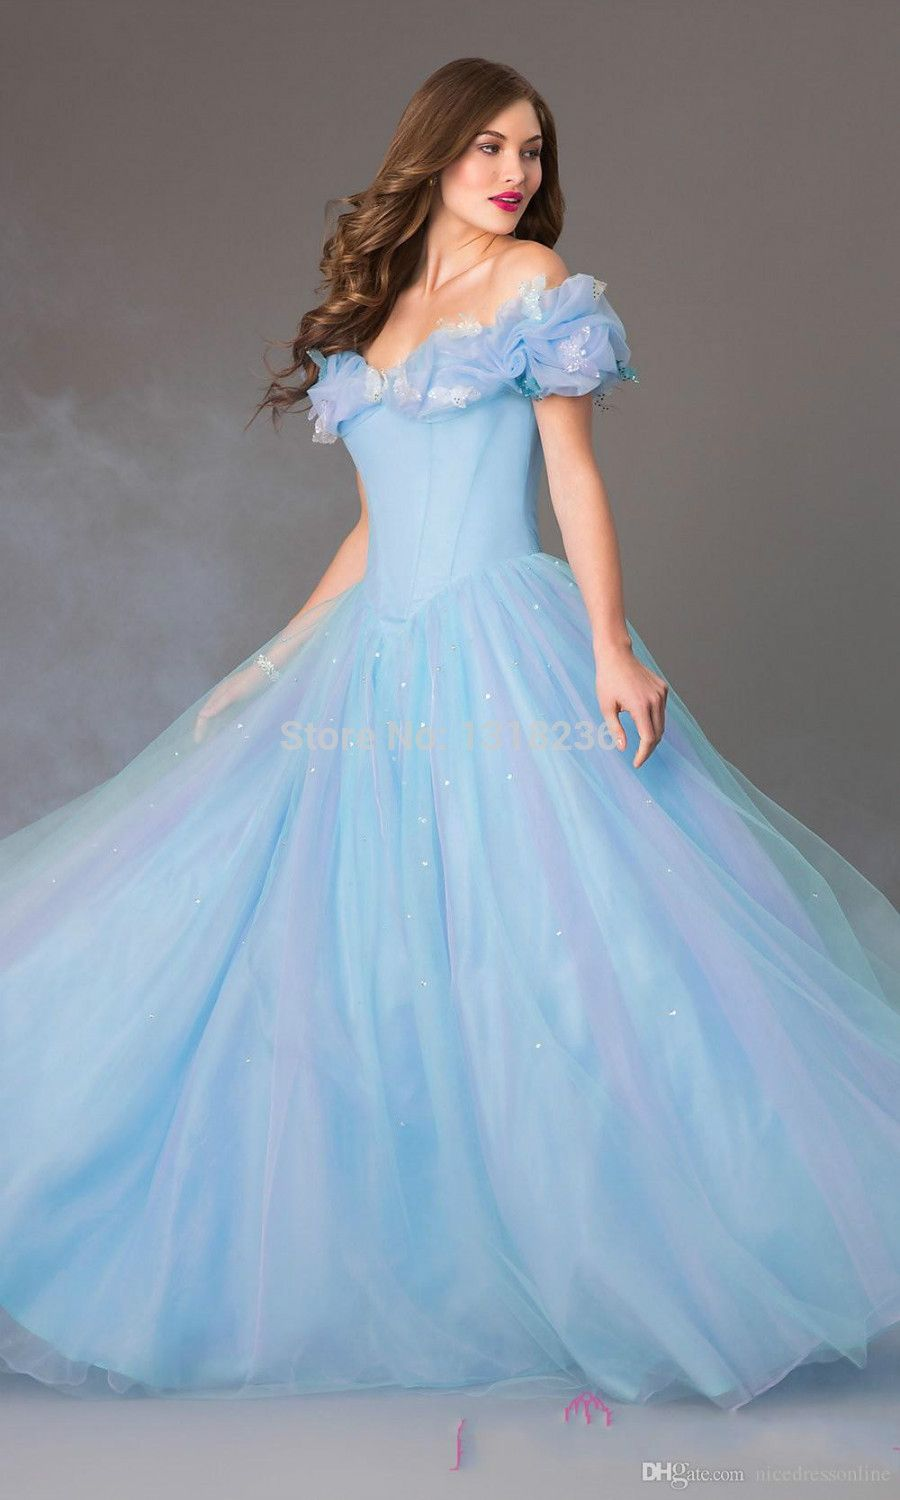 Cinderella ball gown wedding dresses product id 32300957255 sky cinderella ball gown wedding dresses product id 32300957255 sky blue white ivory chapel train ombrellifo Images